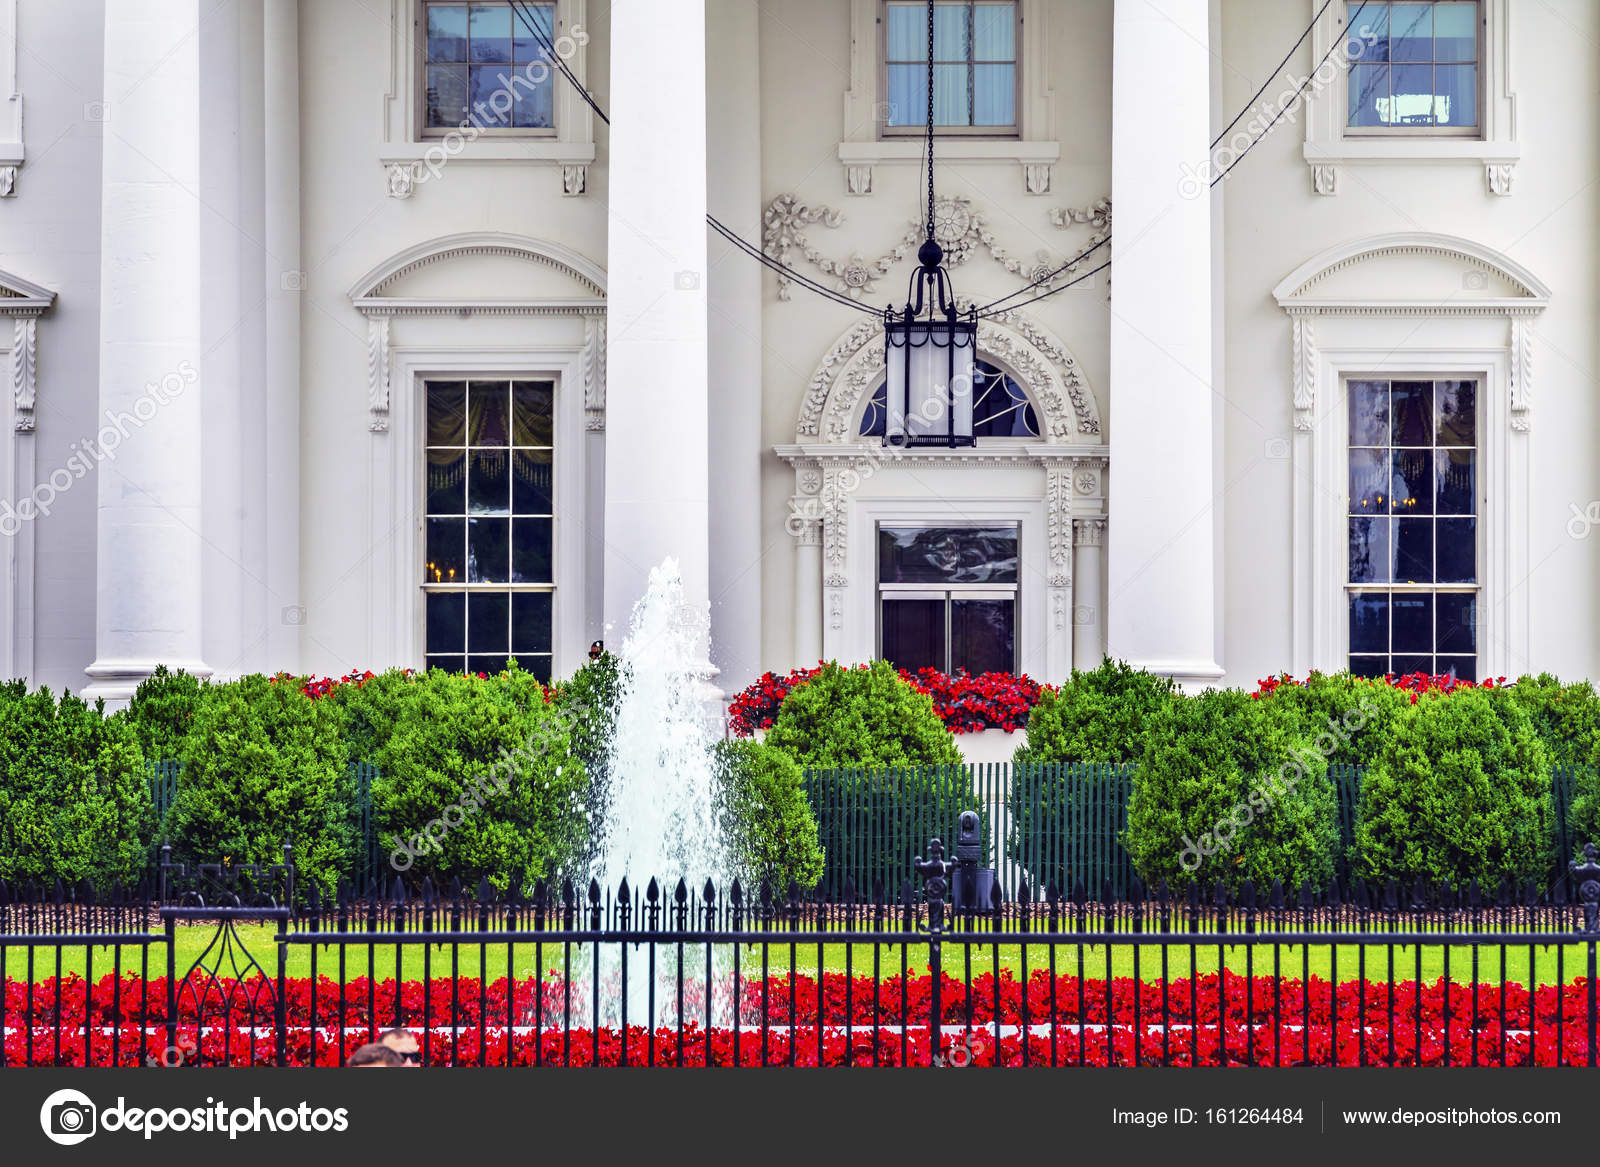 Maison Blanche Porte Fleurs Rouges Pennsylvania Avenue Washington Dc